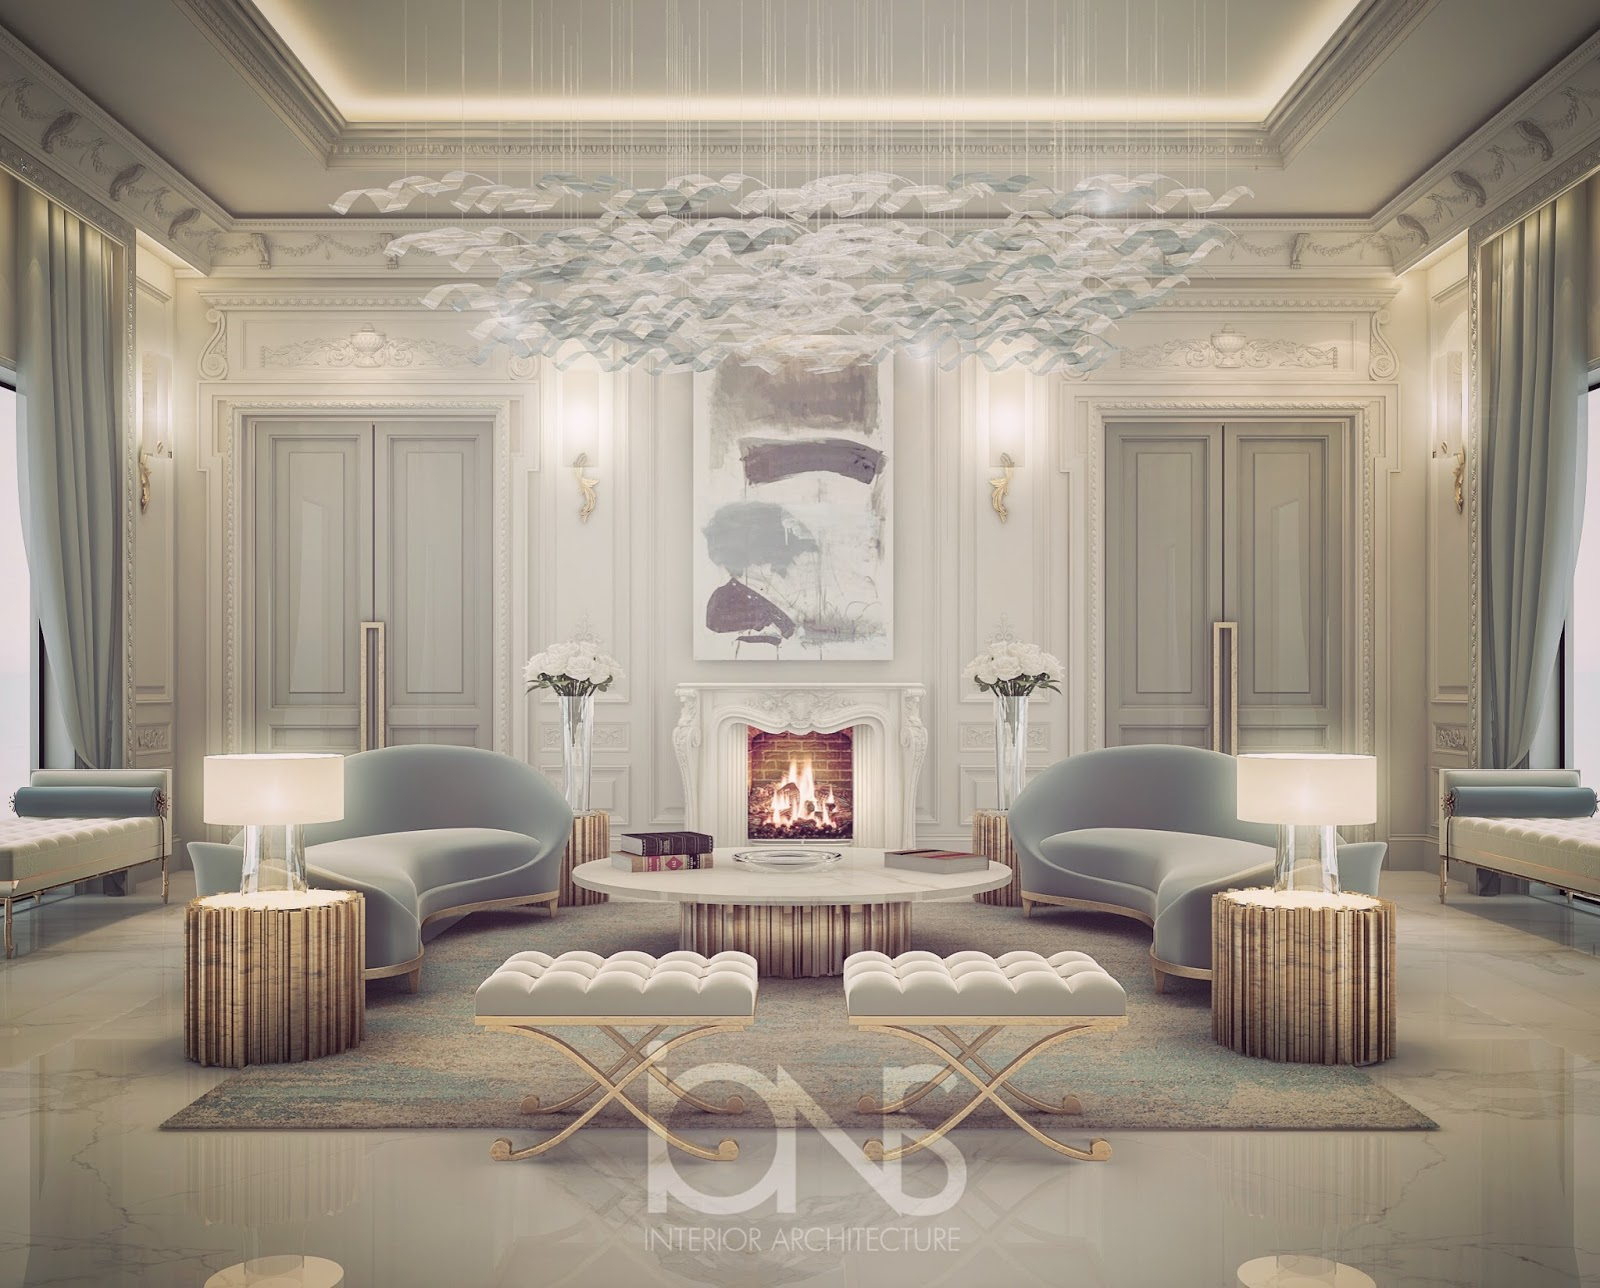 Dubai interior design company interior design ideas for Home interior design abu dhabi